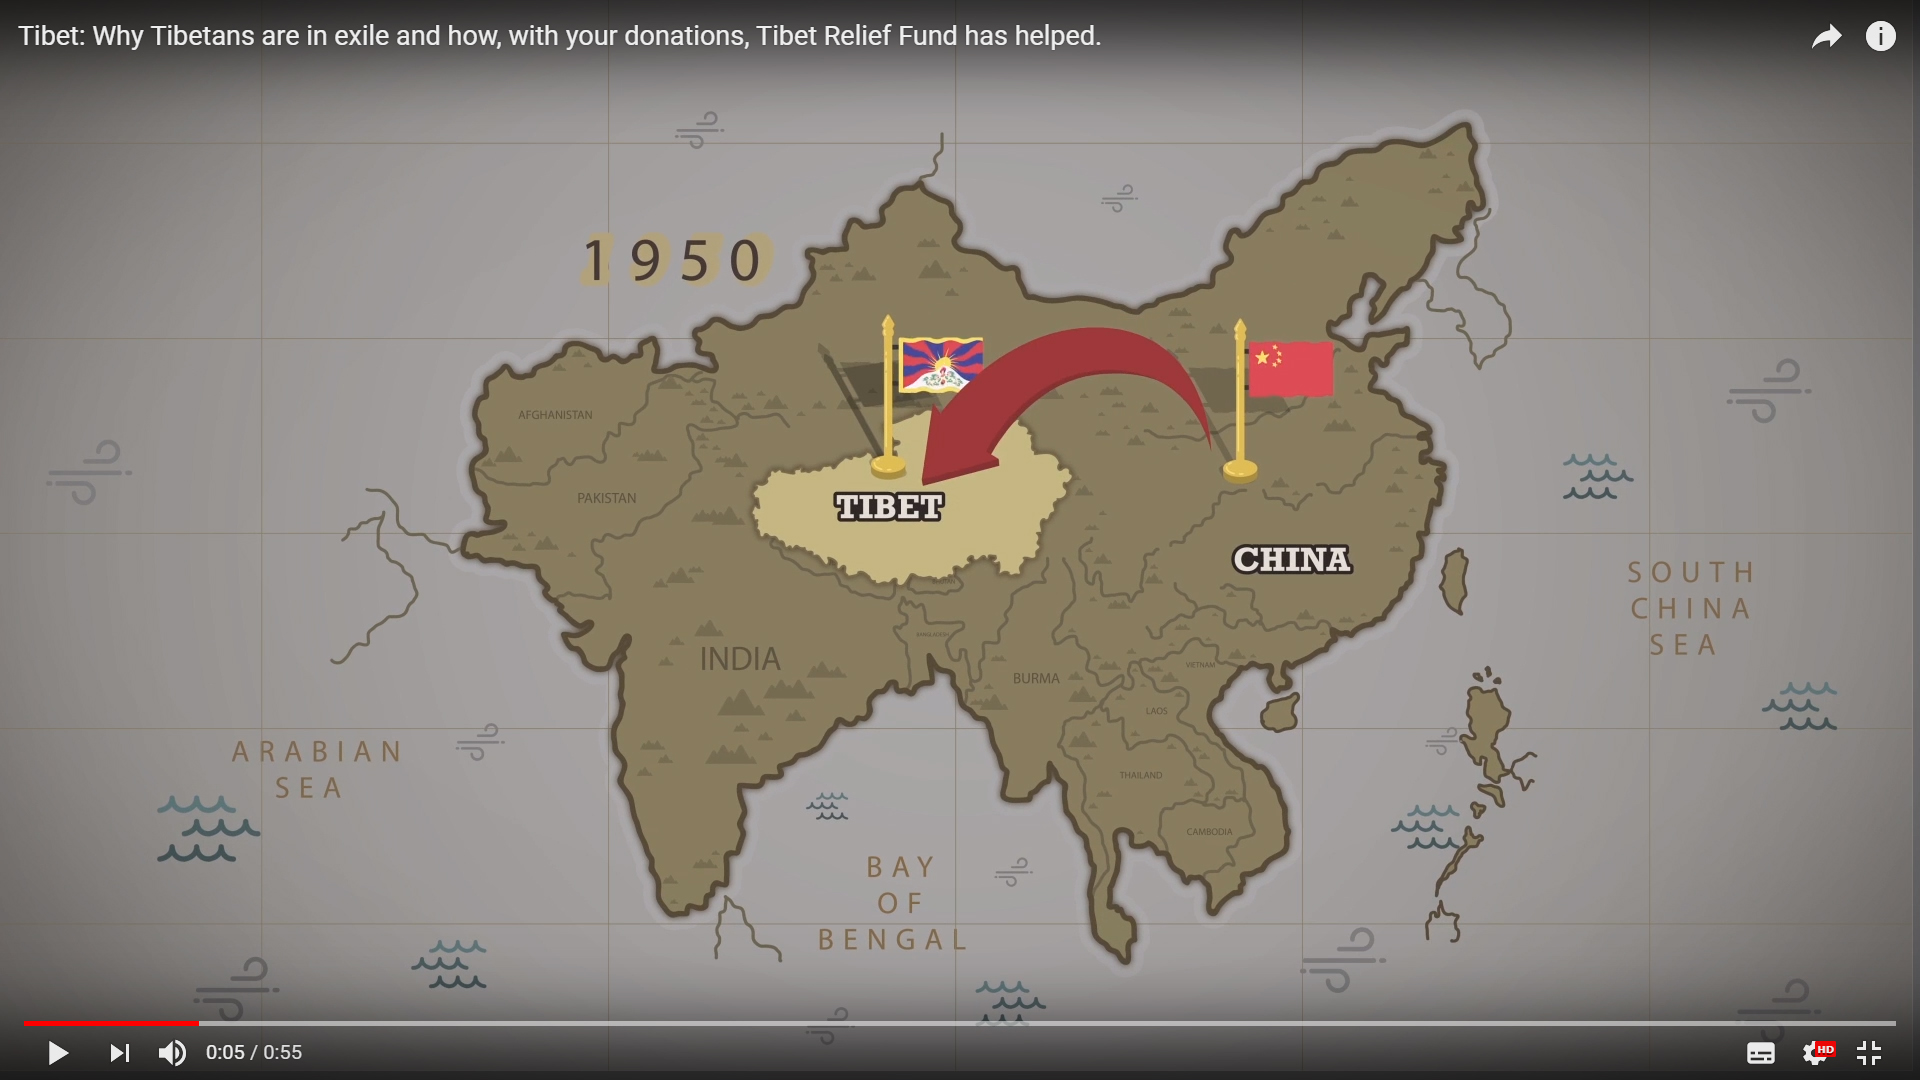 Video: Why Tibetans are in exile and how, with your donations, Tibet Relief Fund has helped.